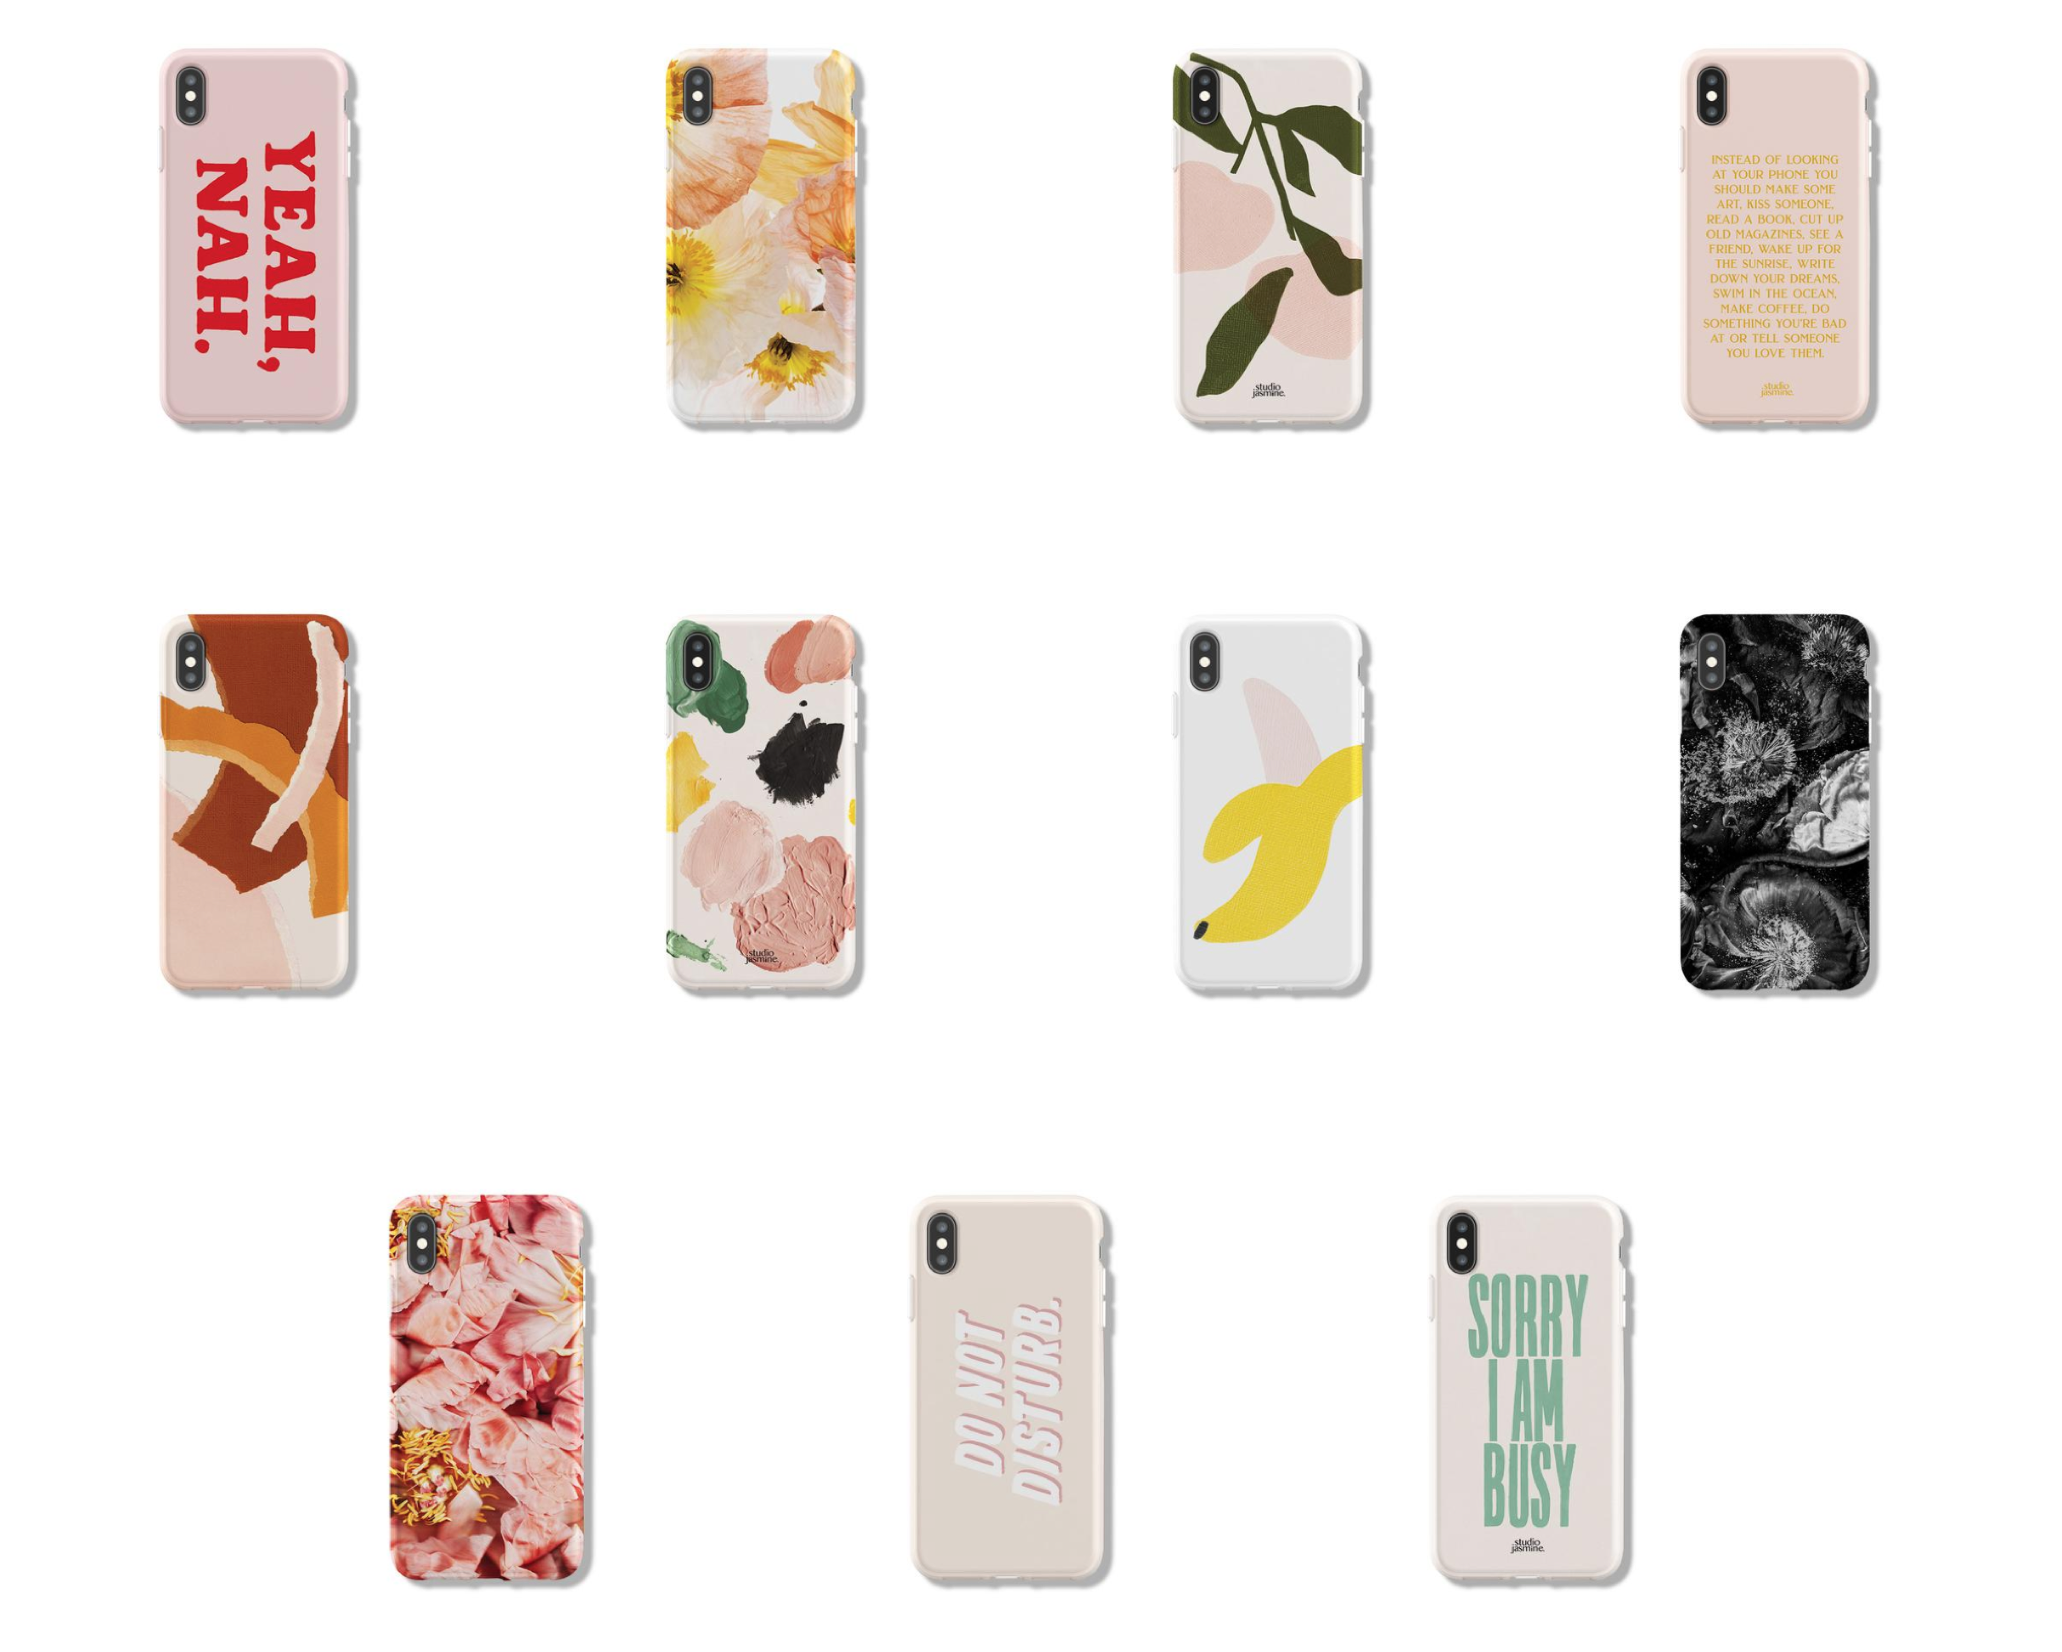 JASMINE DOWLING PHONE CASE COLLECTION